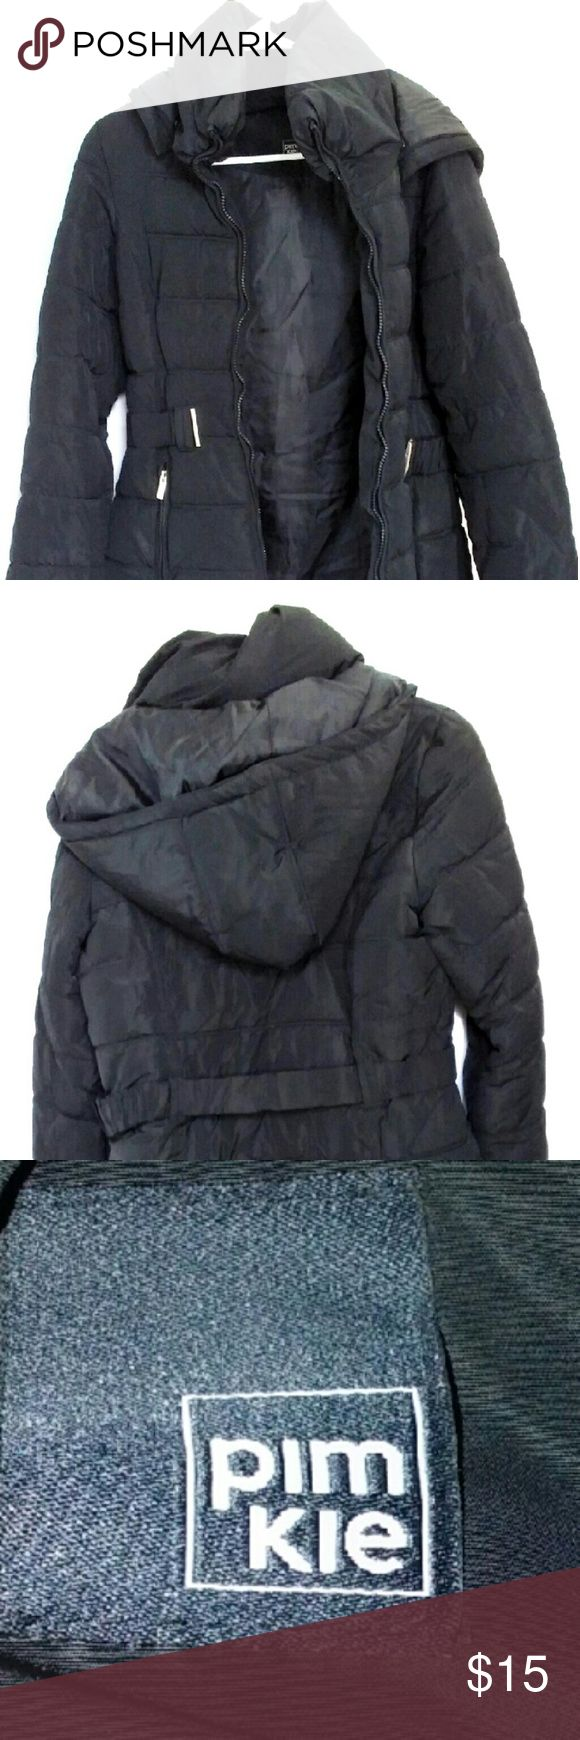 Women's PUFFER JACKET! This is a nice puffer jacket that is snug when you wear it. It has a wonderful hood, belt and some nice pockets. Pimkie Jackets & Coats Puffers